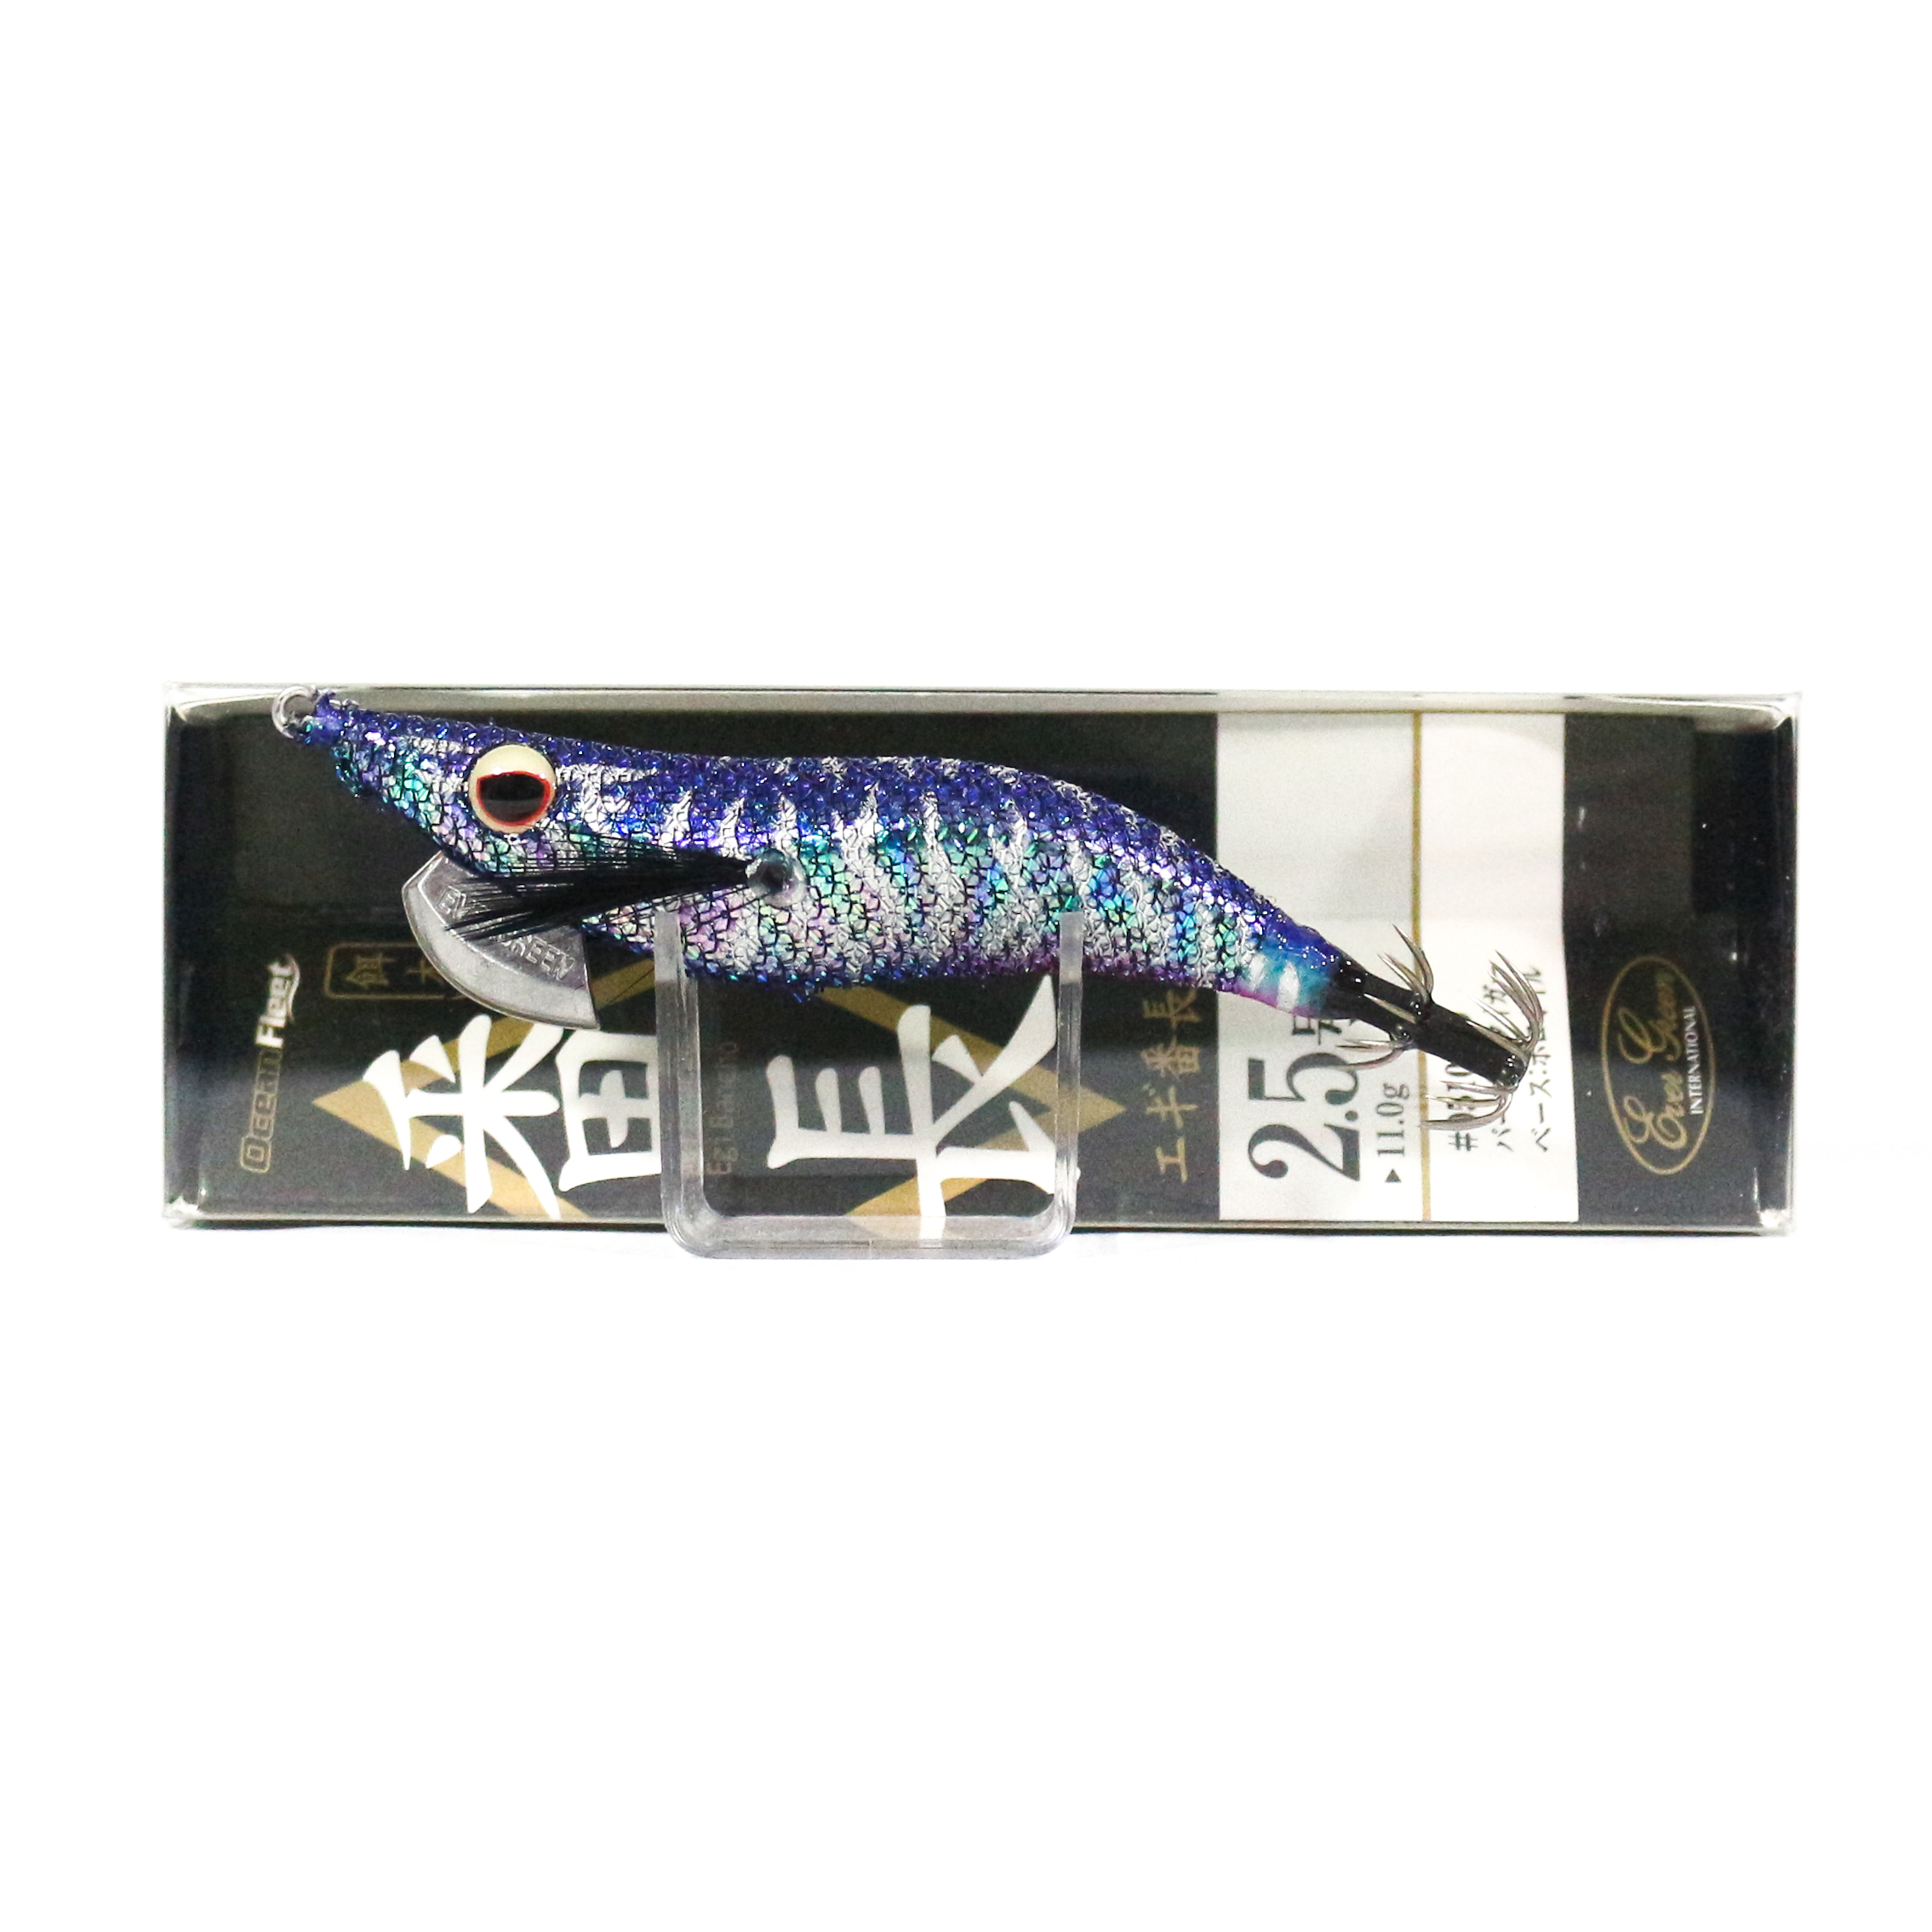 Evergreen Ocean Fleet Custom Squid Jig Lure 2.5 510H0 (2637)